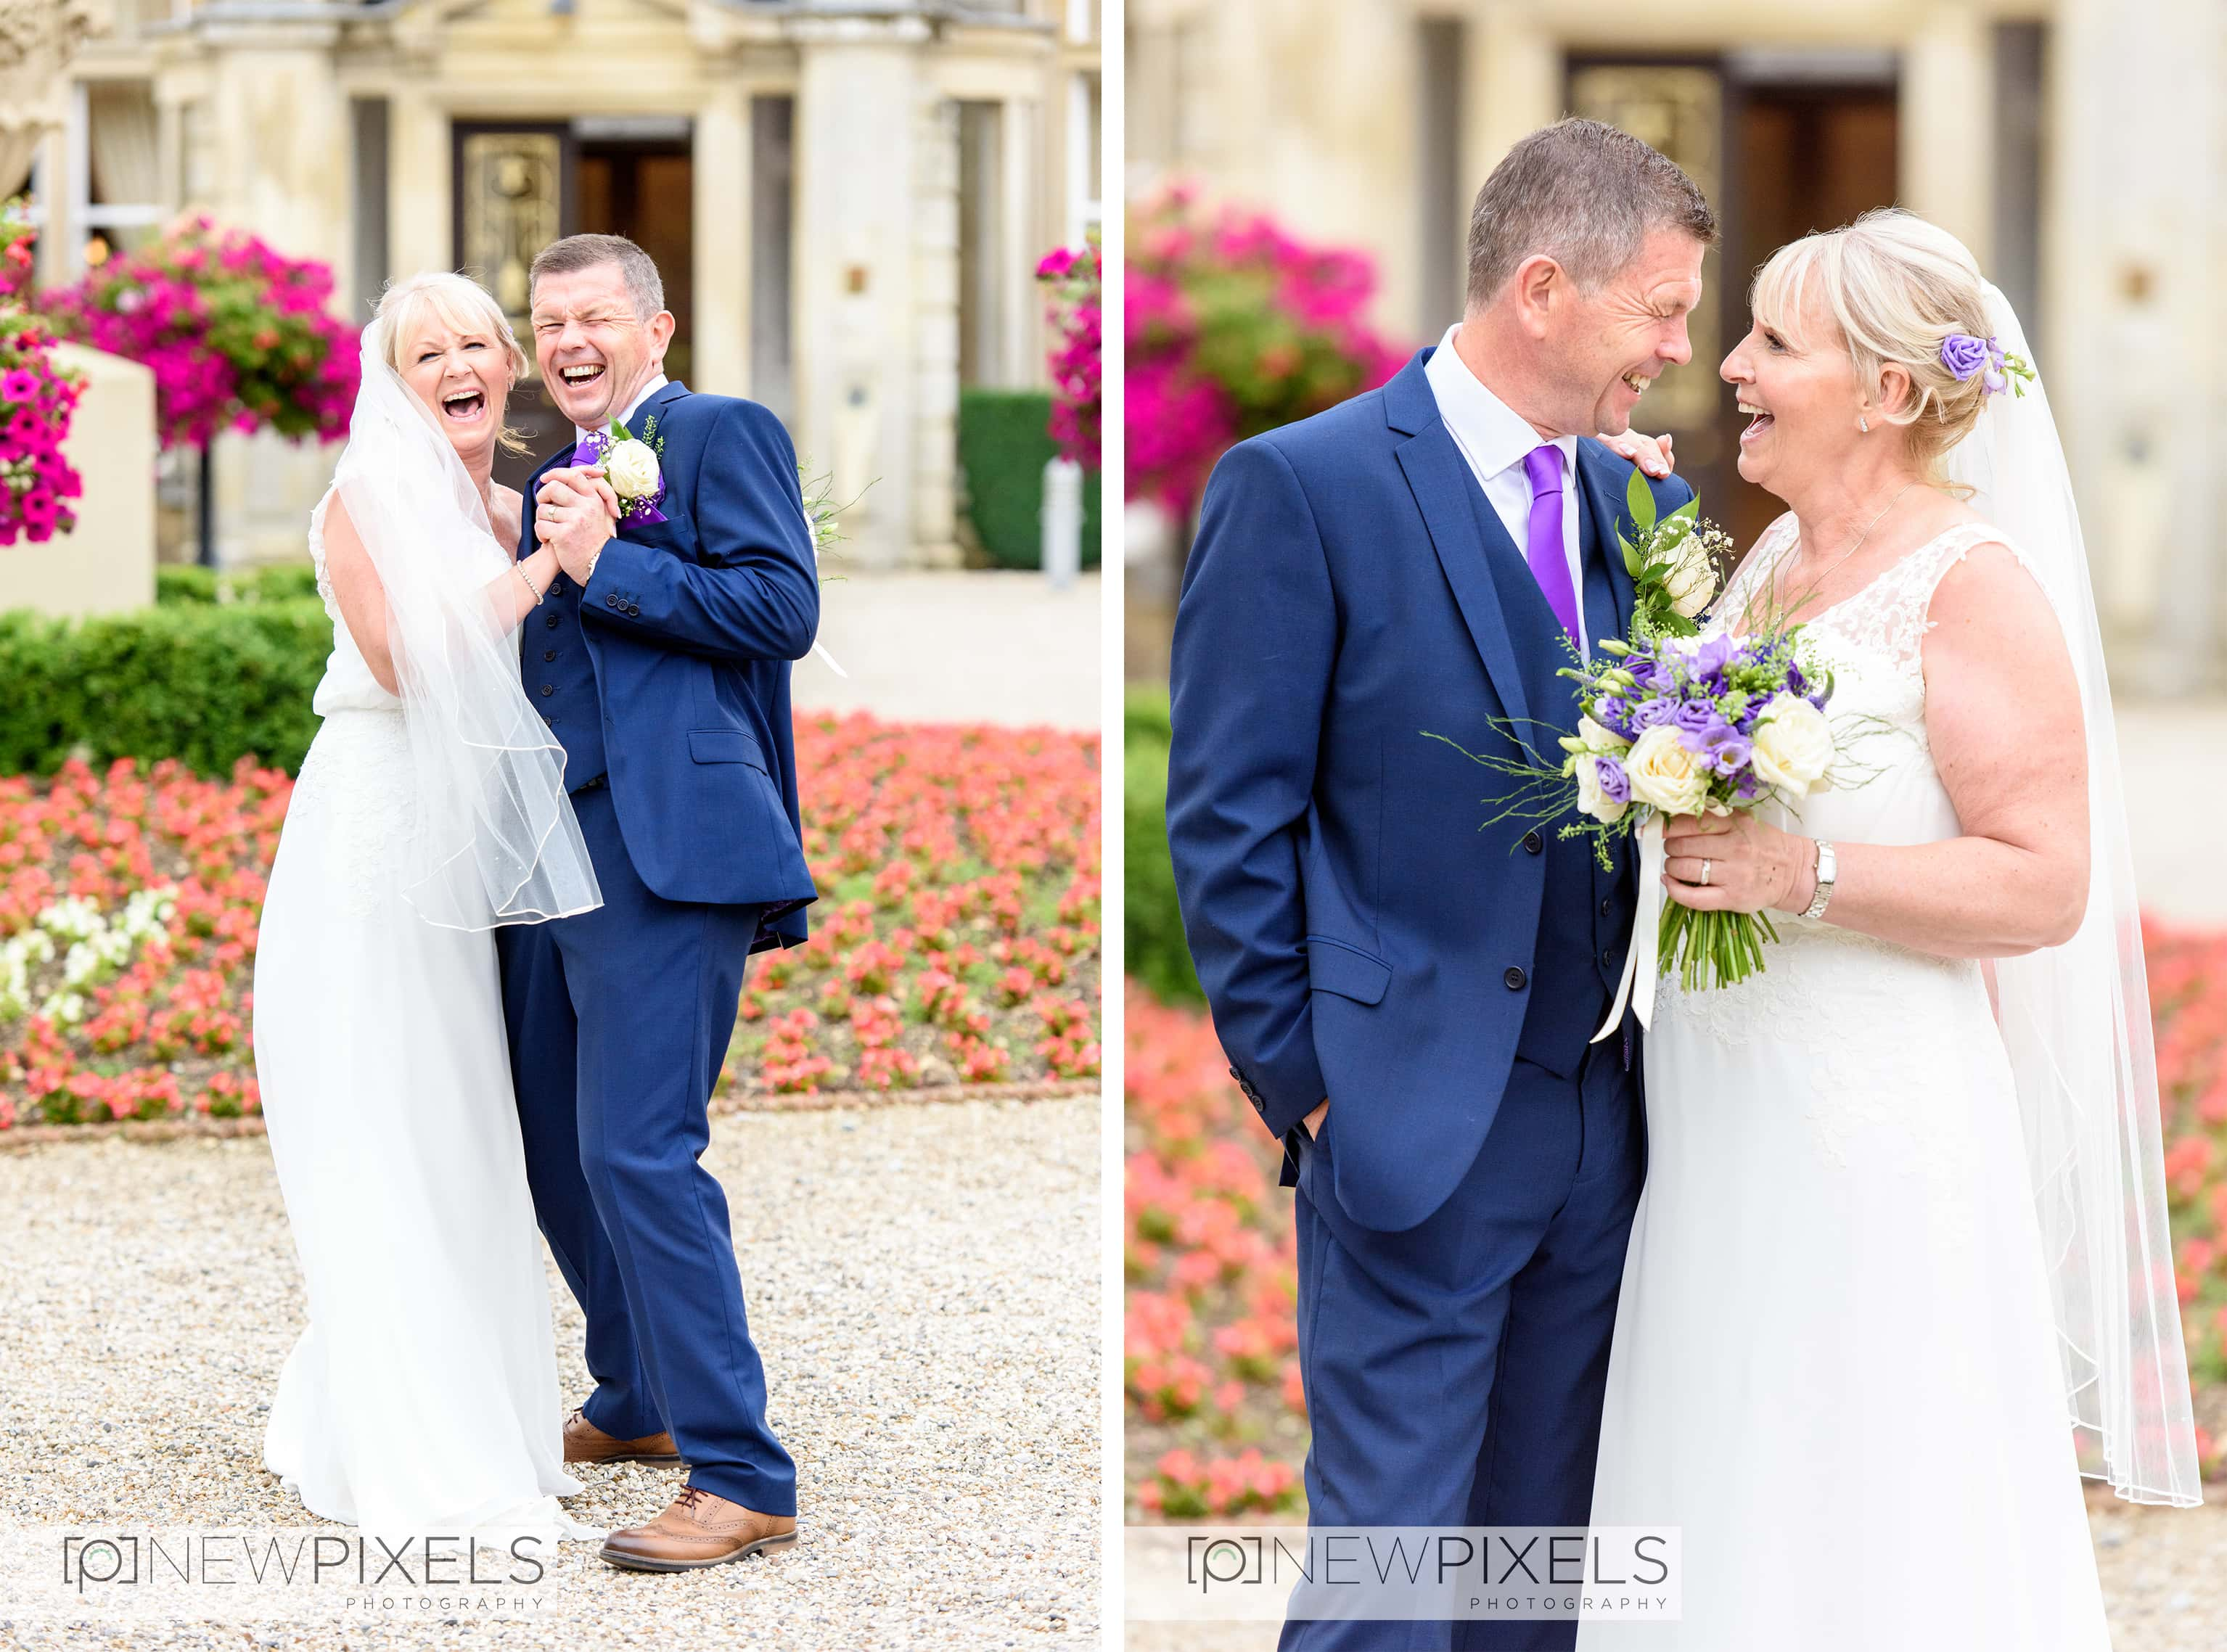 downhall wedding photographer5